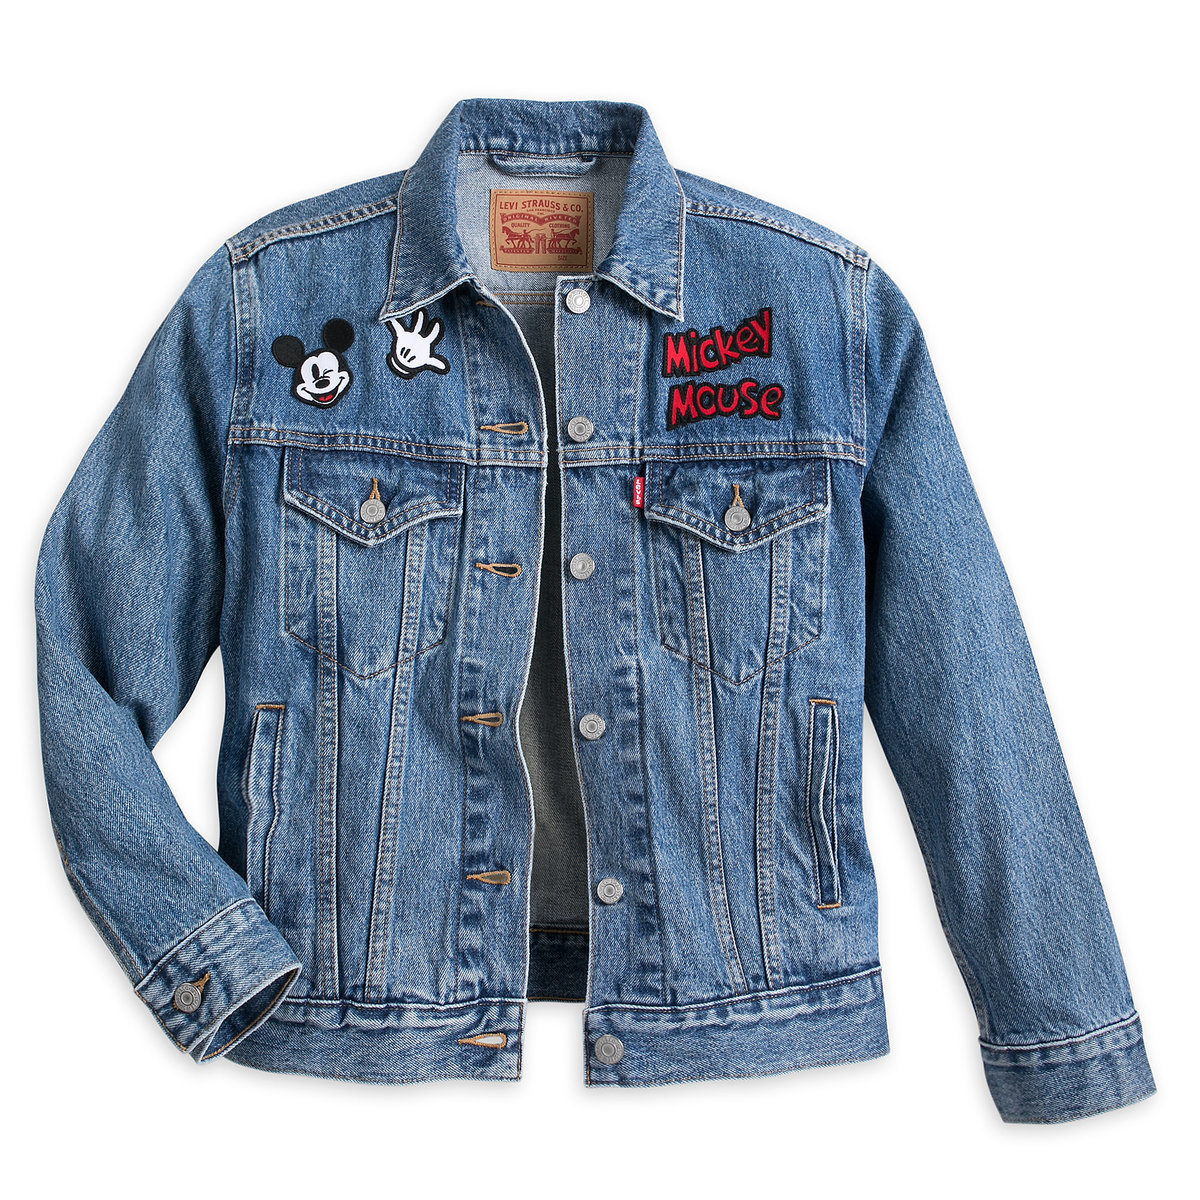 787f7c81e Mickey Mouse Denim Jacket for Women by Levi s